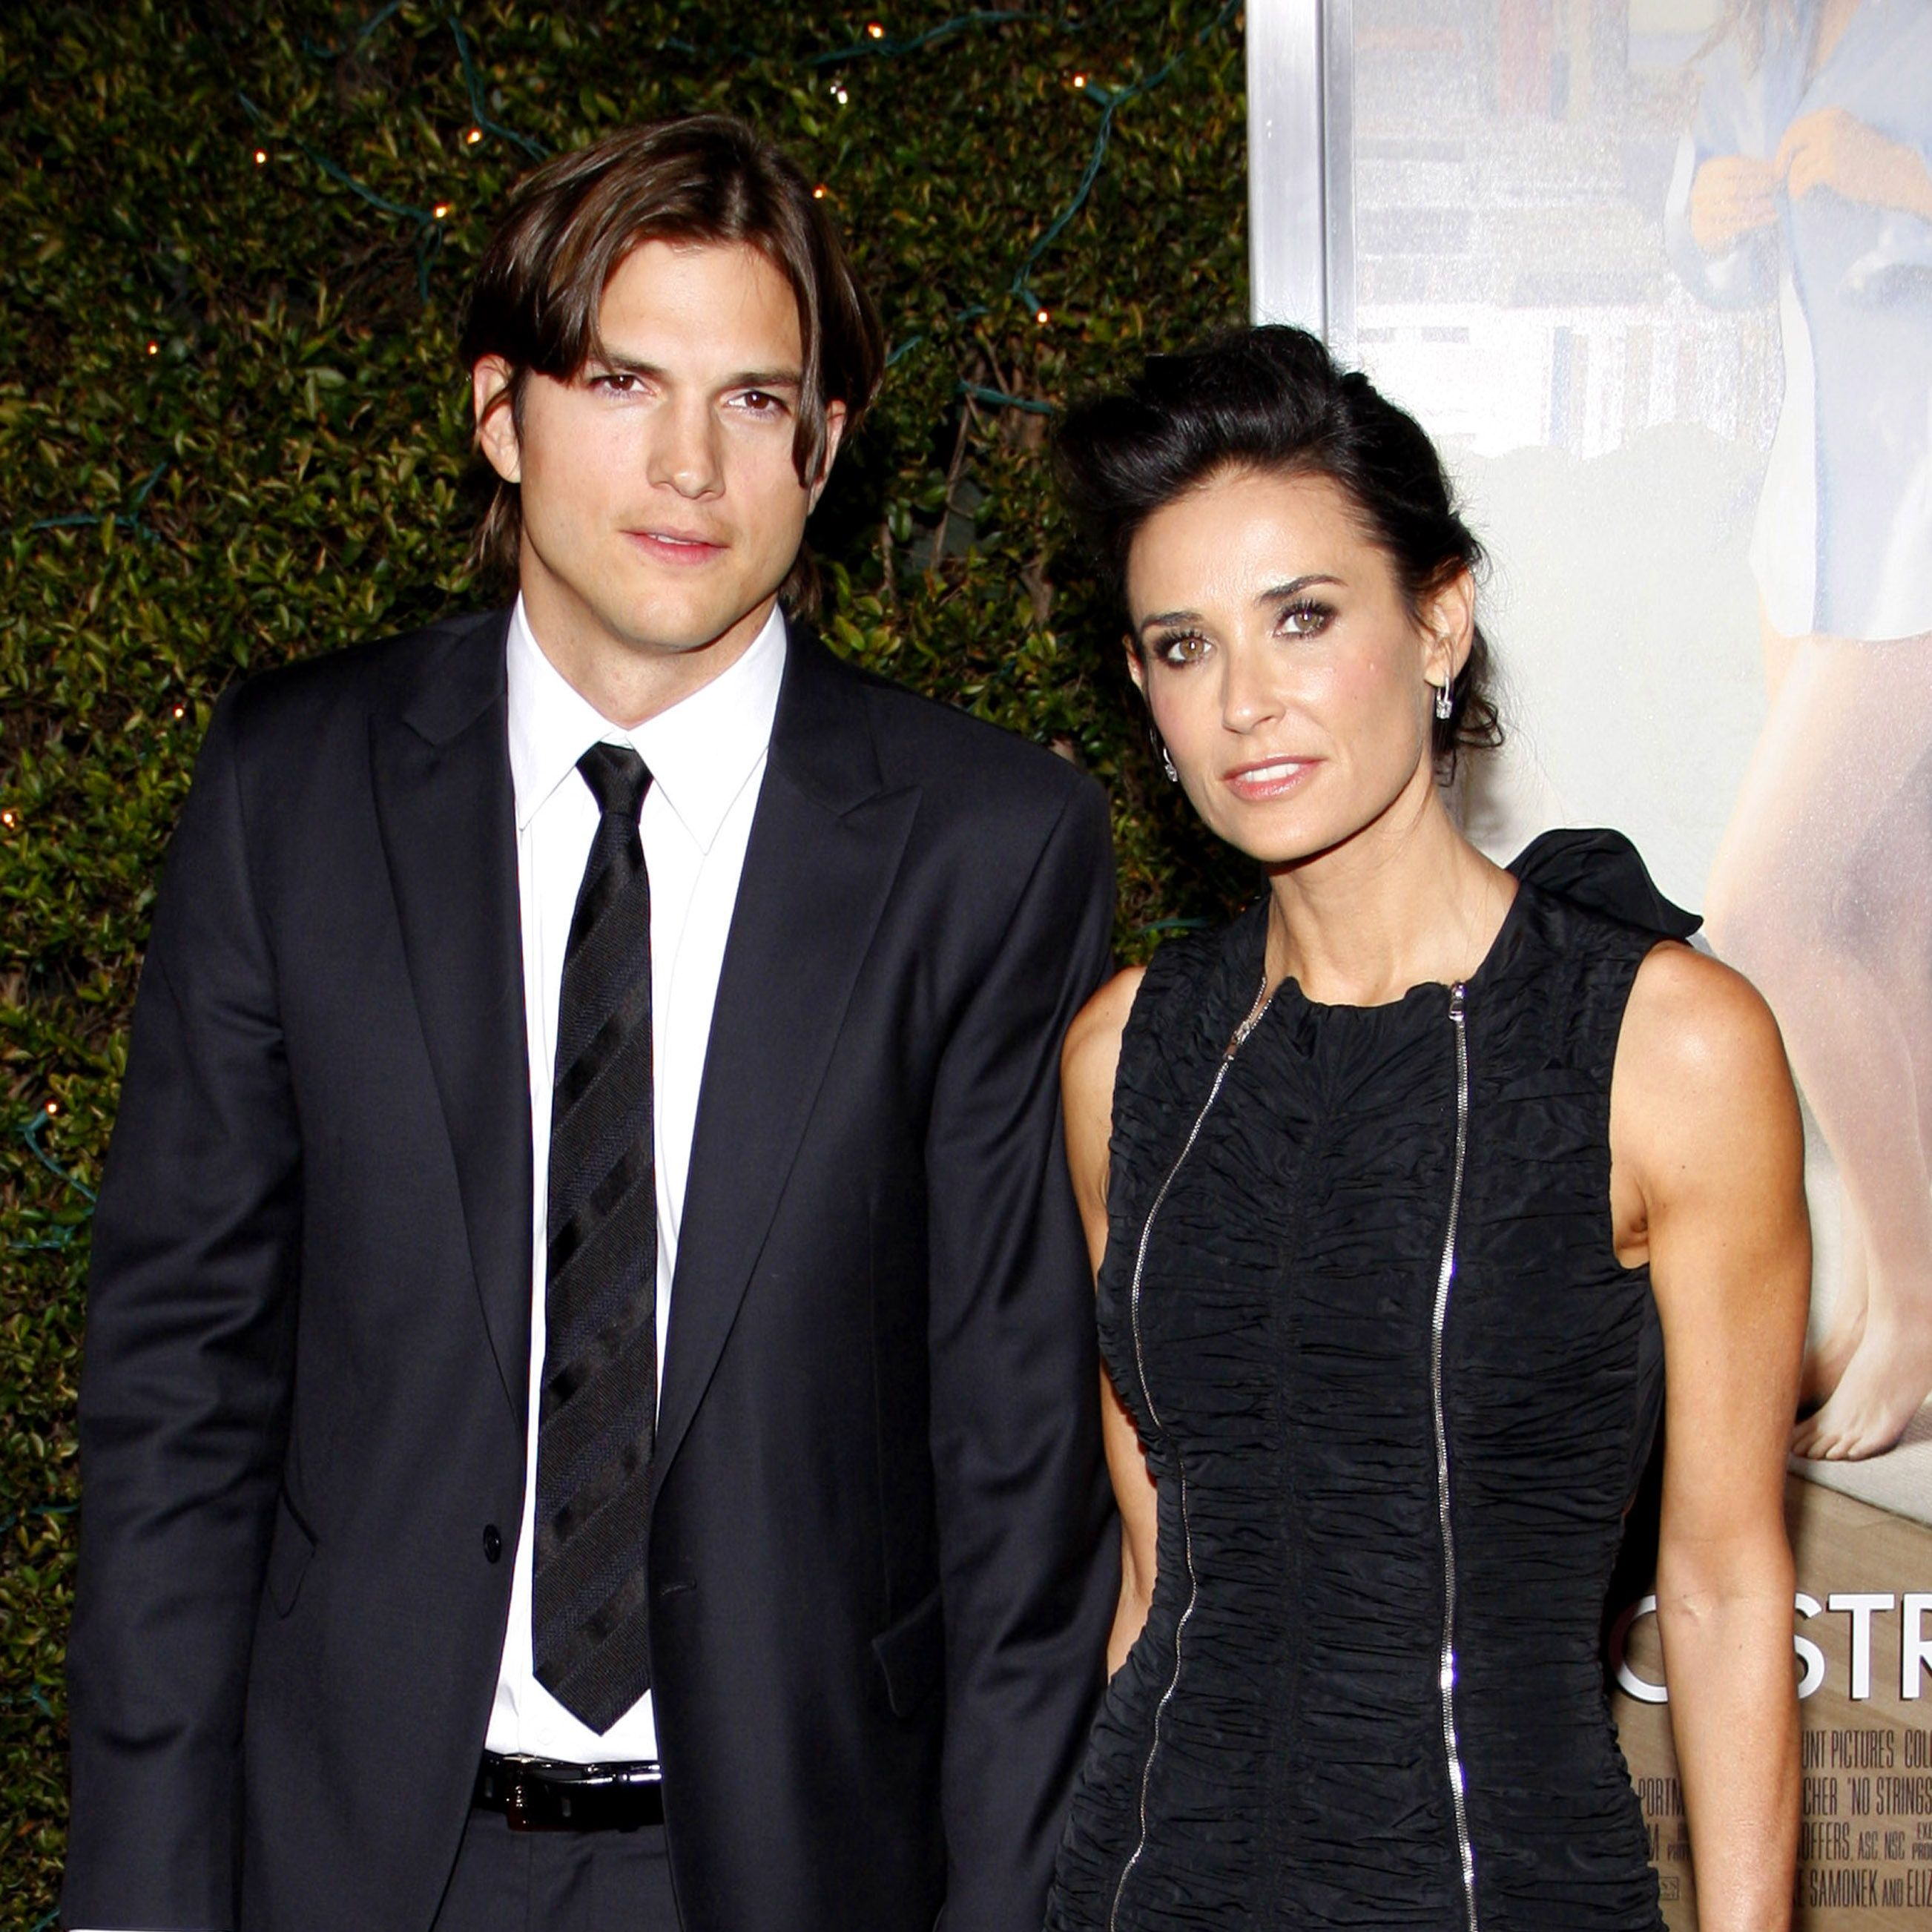 Ashton Kutcher and Demi Moore People were floored when Ashton and Demi got together, largely due to their 15-year age difference. But the two seemed like a good match and publicly supported each other during their six-year marriage.